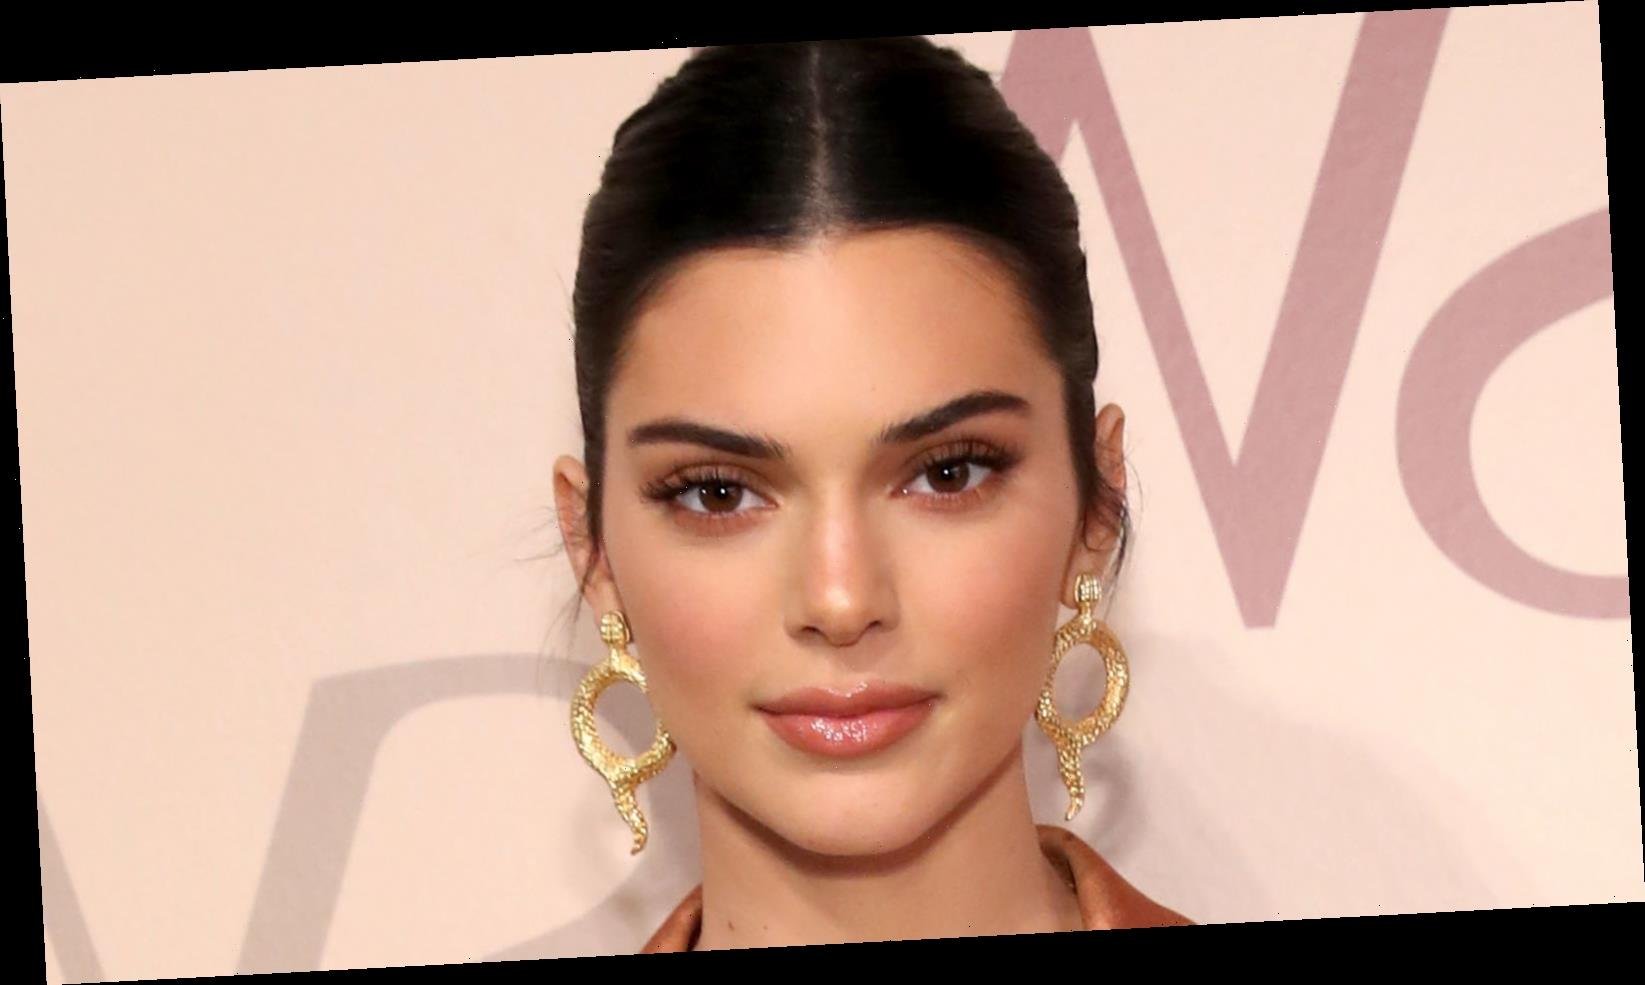 Why Kendall Jenner's Latest Photo Is Turning Heads